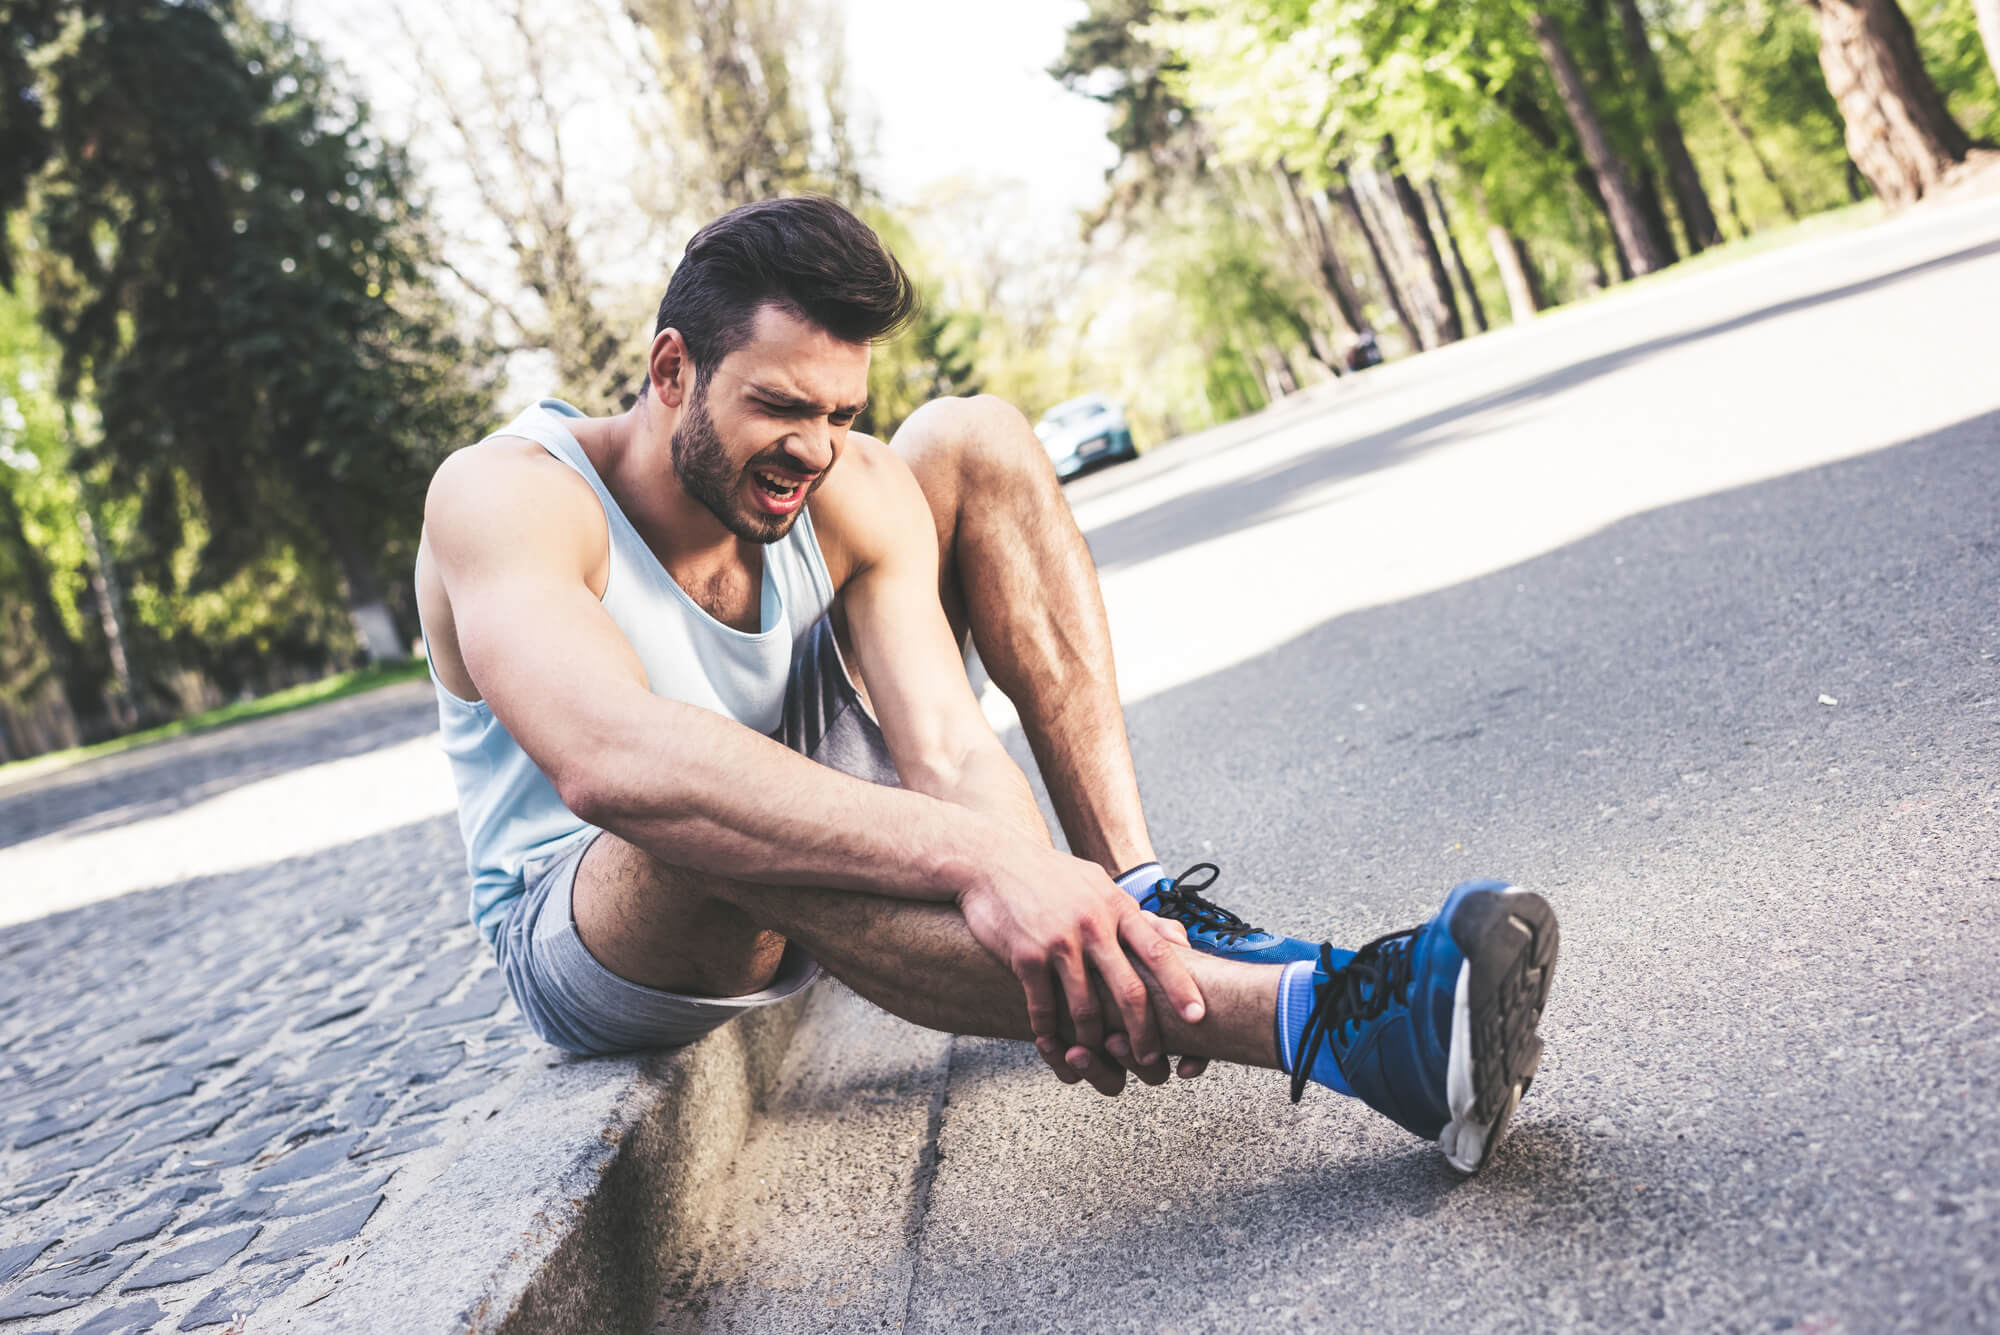 Injury Prevention and Rehabilitation